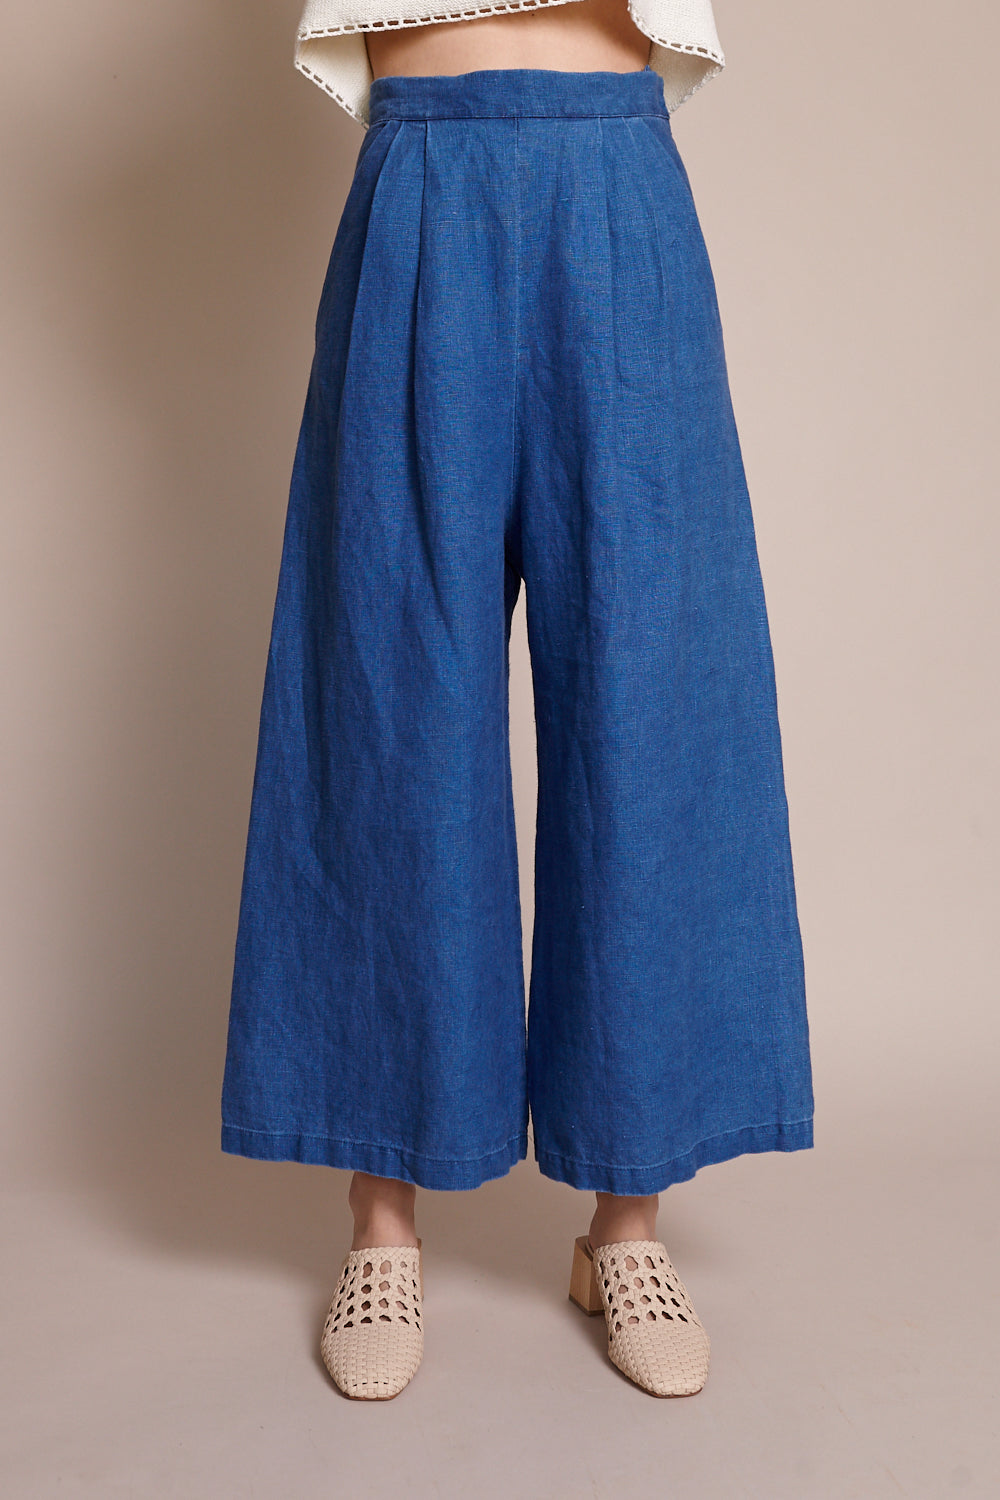 Crop Culotte in Indigo